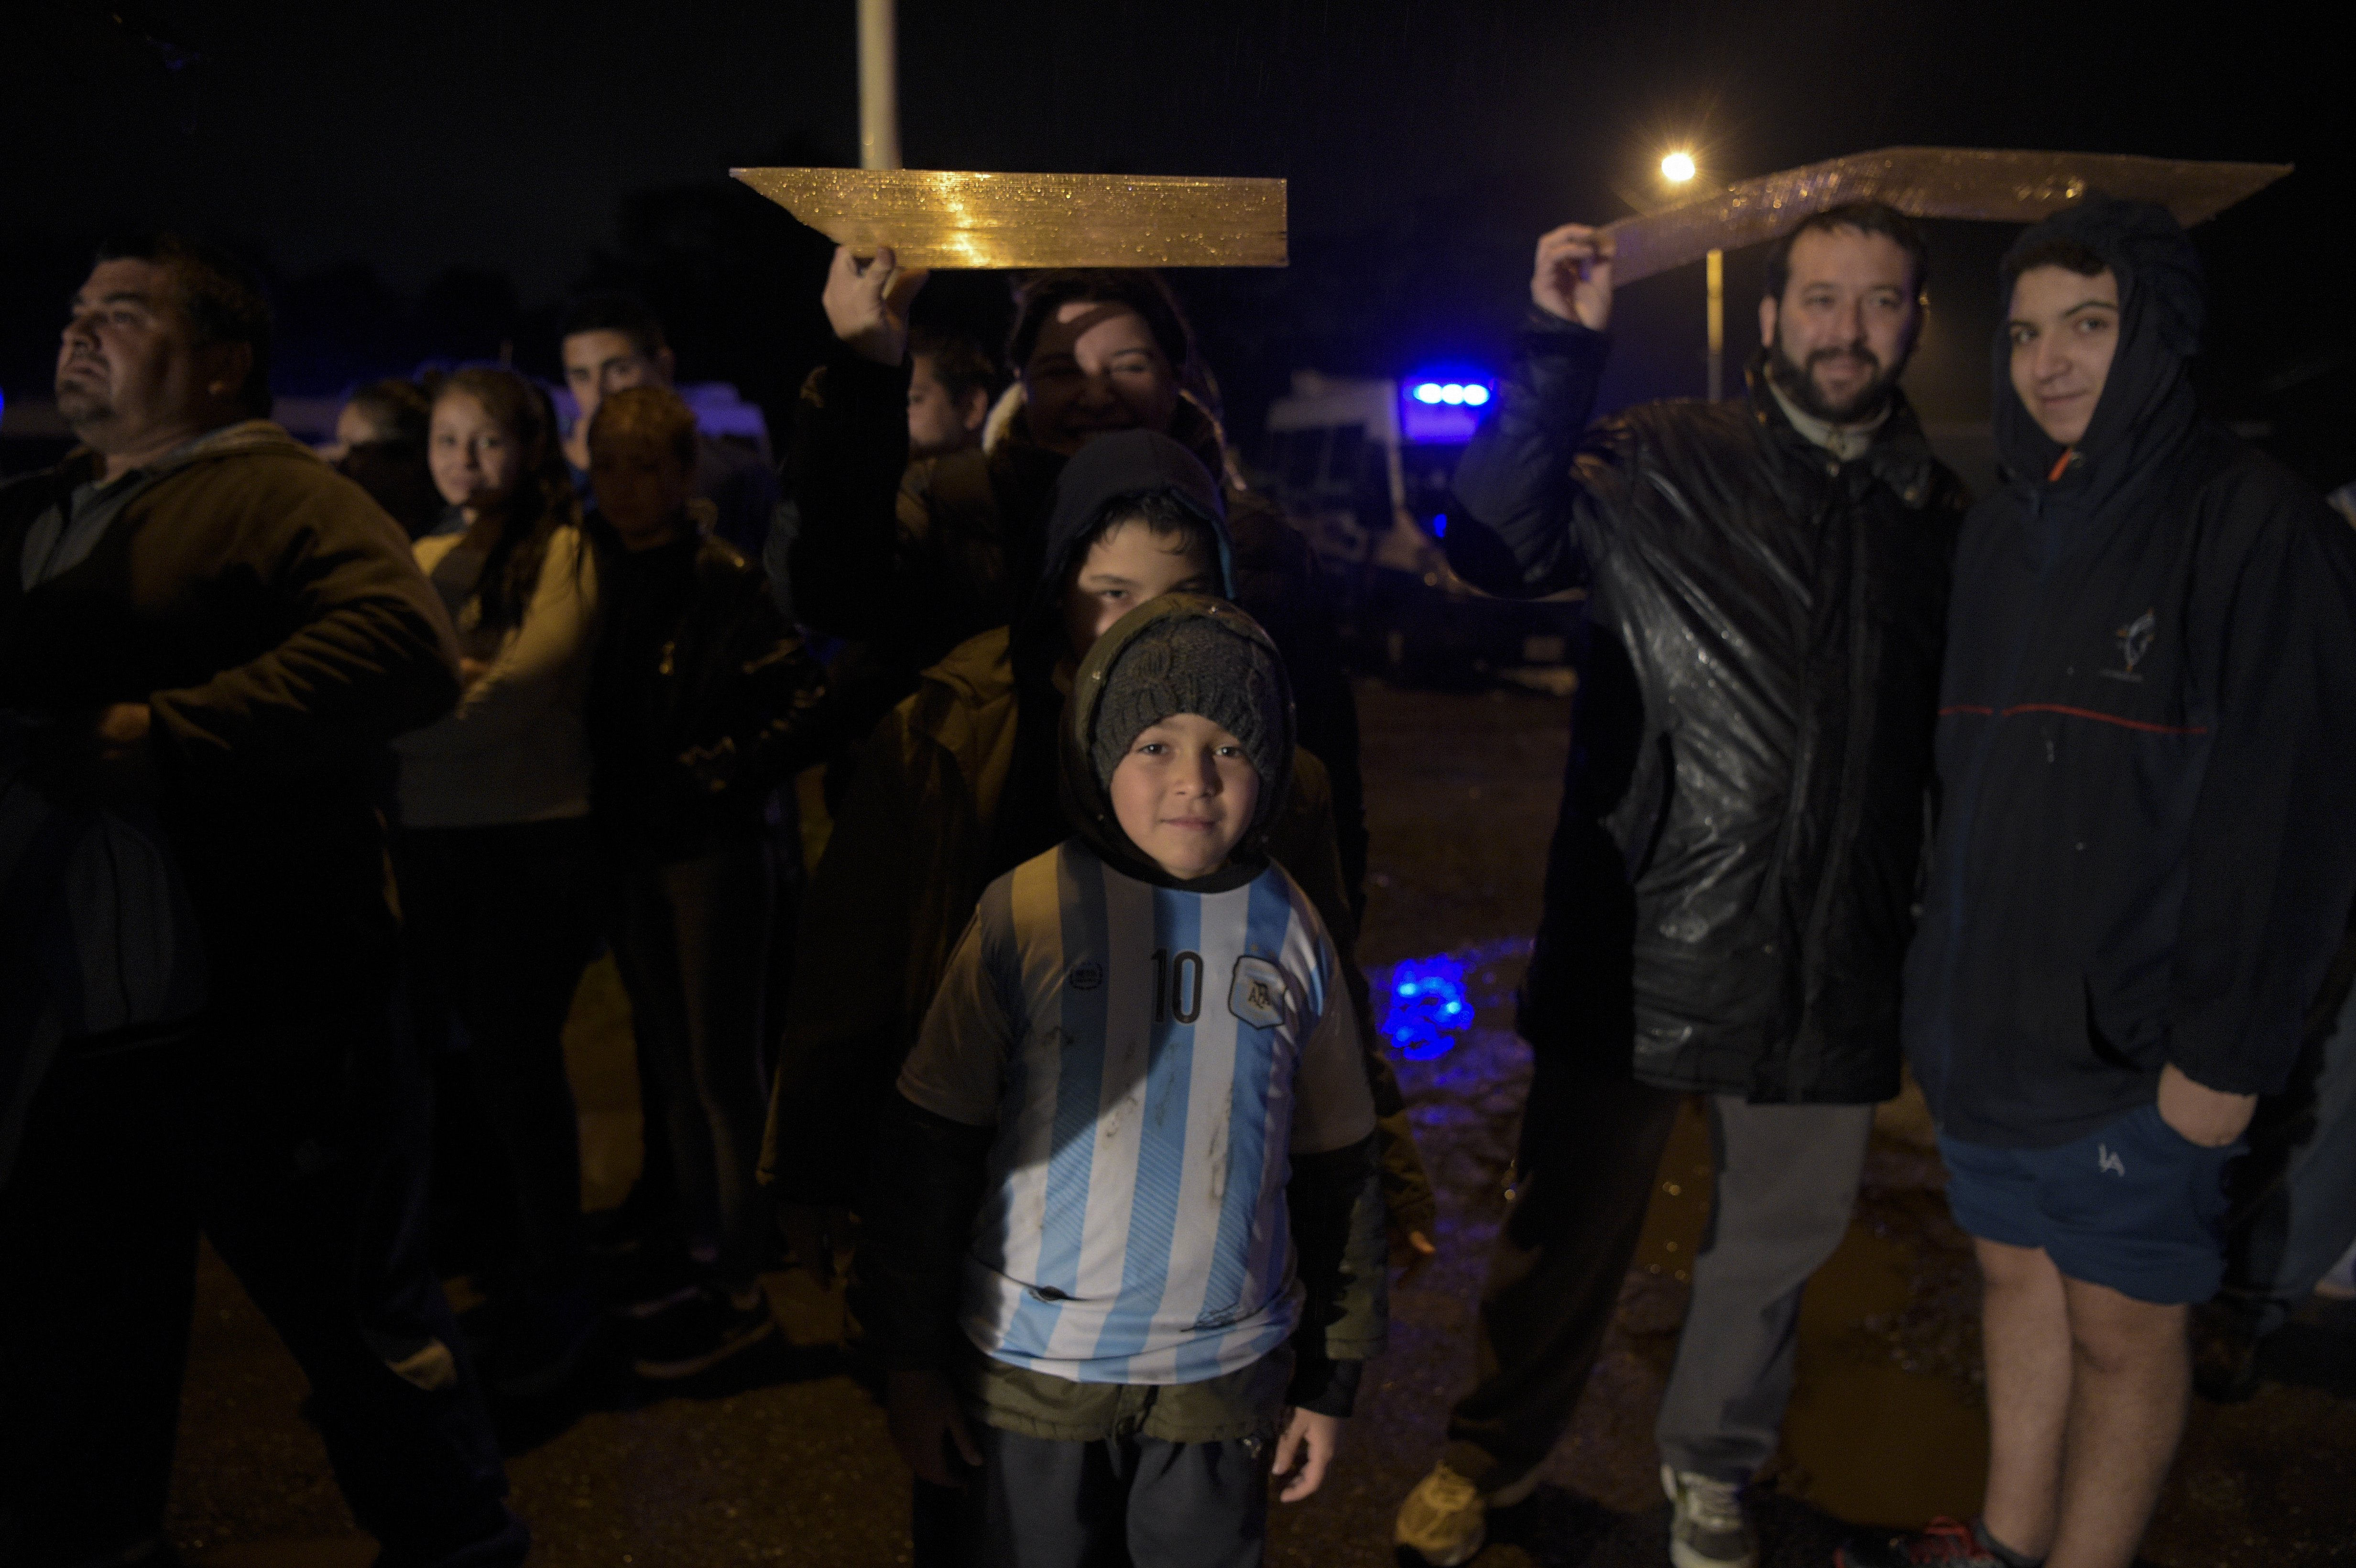 People stand under the rain waiting for the arrival of Argentina's football team from the Copa America Centenario held in the United States, on June 27, 2016 in Buenos Aires.  Argentina lost the final against Chile 4-2 in the penalty shoot-out. Argentines begged Lionel Messi -who tearfully decided to quit the international team after missing a spot-kick in the shootout- not to leave the national team despite its traumatic final. / AFP / EITAN ABRAMOVICH        (Photo credit should read EITAN ABRAMOVICH/AFP/Getty Images)